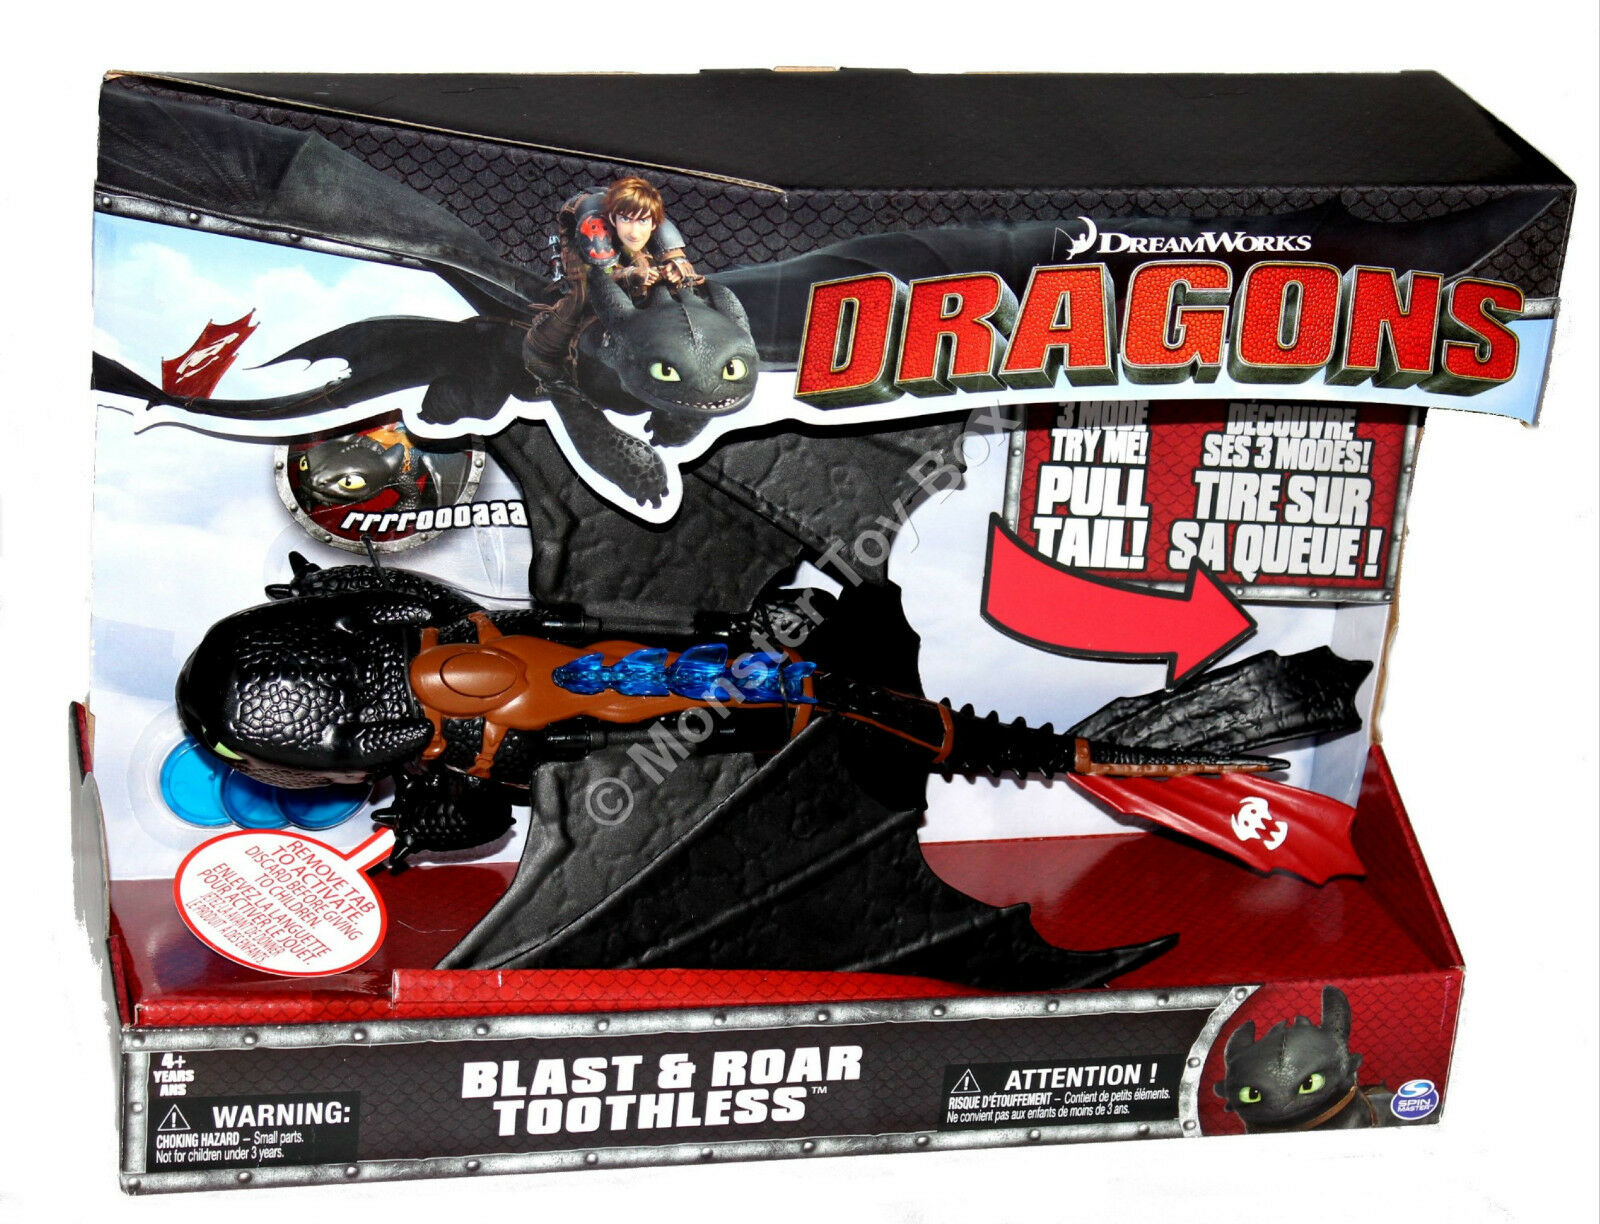 Blast and Roar Toothless Dreamworks Dreamworks Dreamworks How to Train Your Dragon 2 US Seller 89a51a